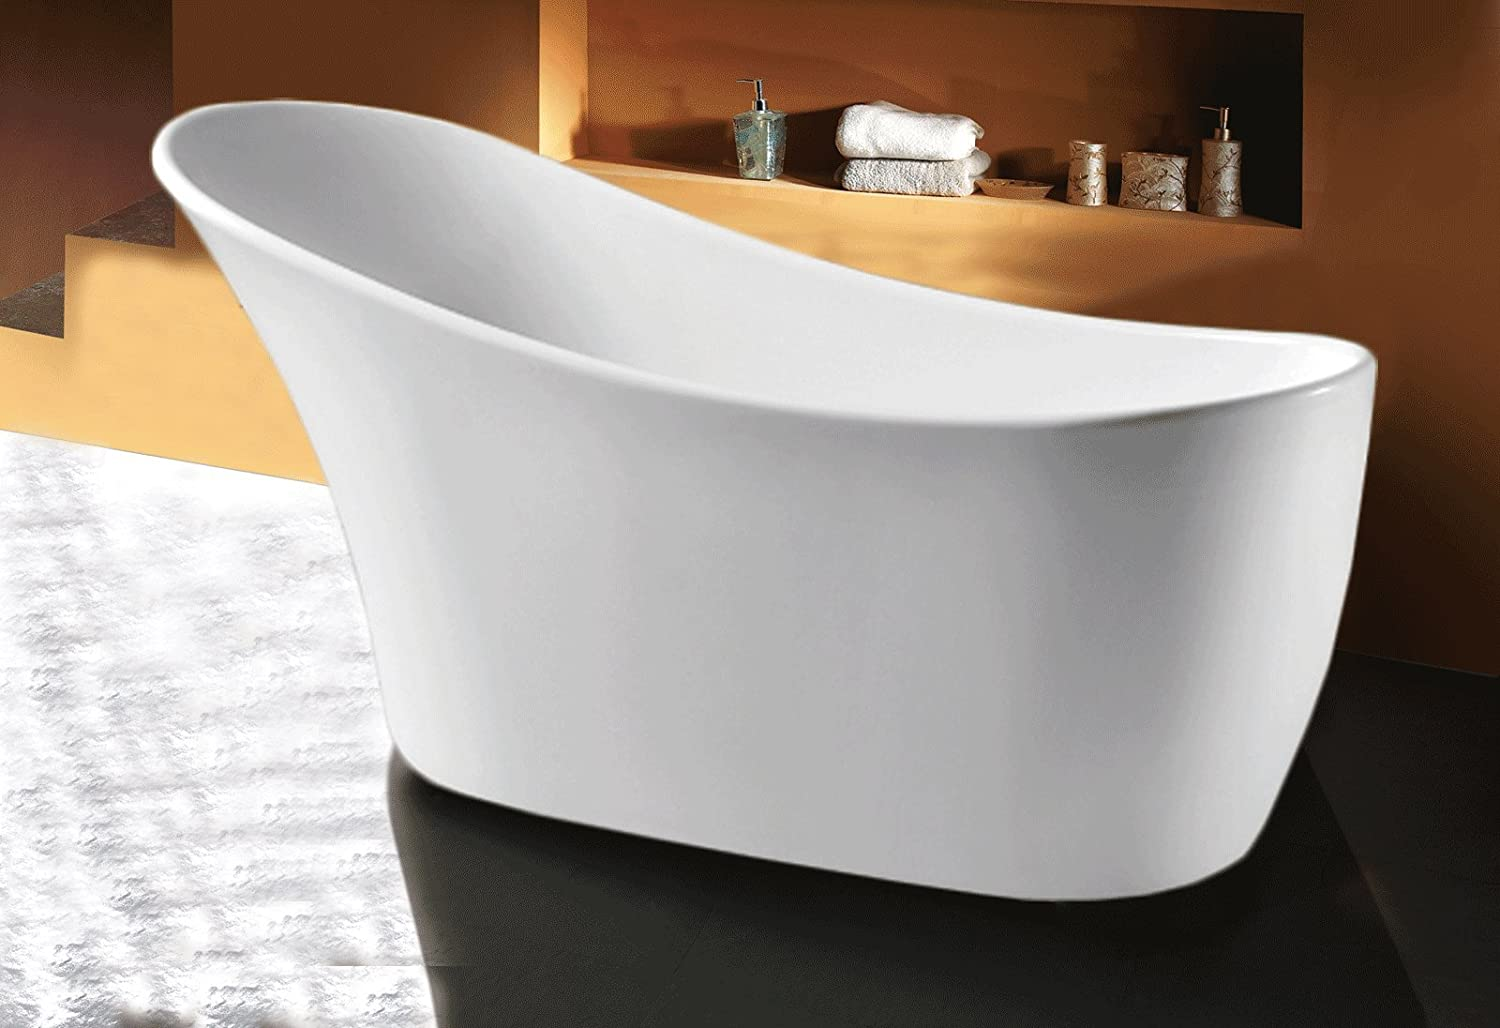 Top 10 best free standing acrylic bathtubs 2016 2017 on for Best freestanding tub material